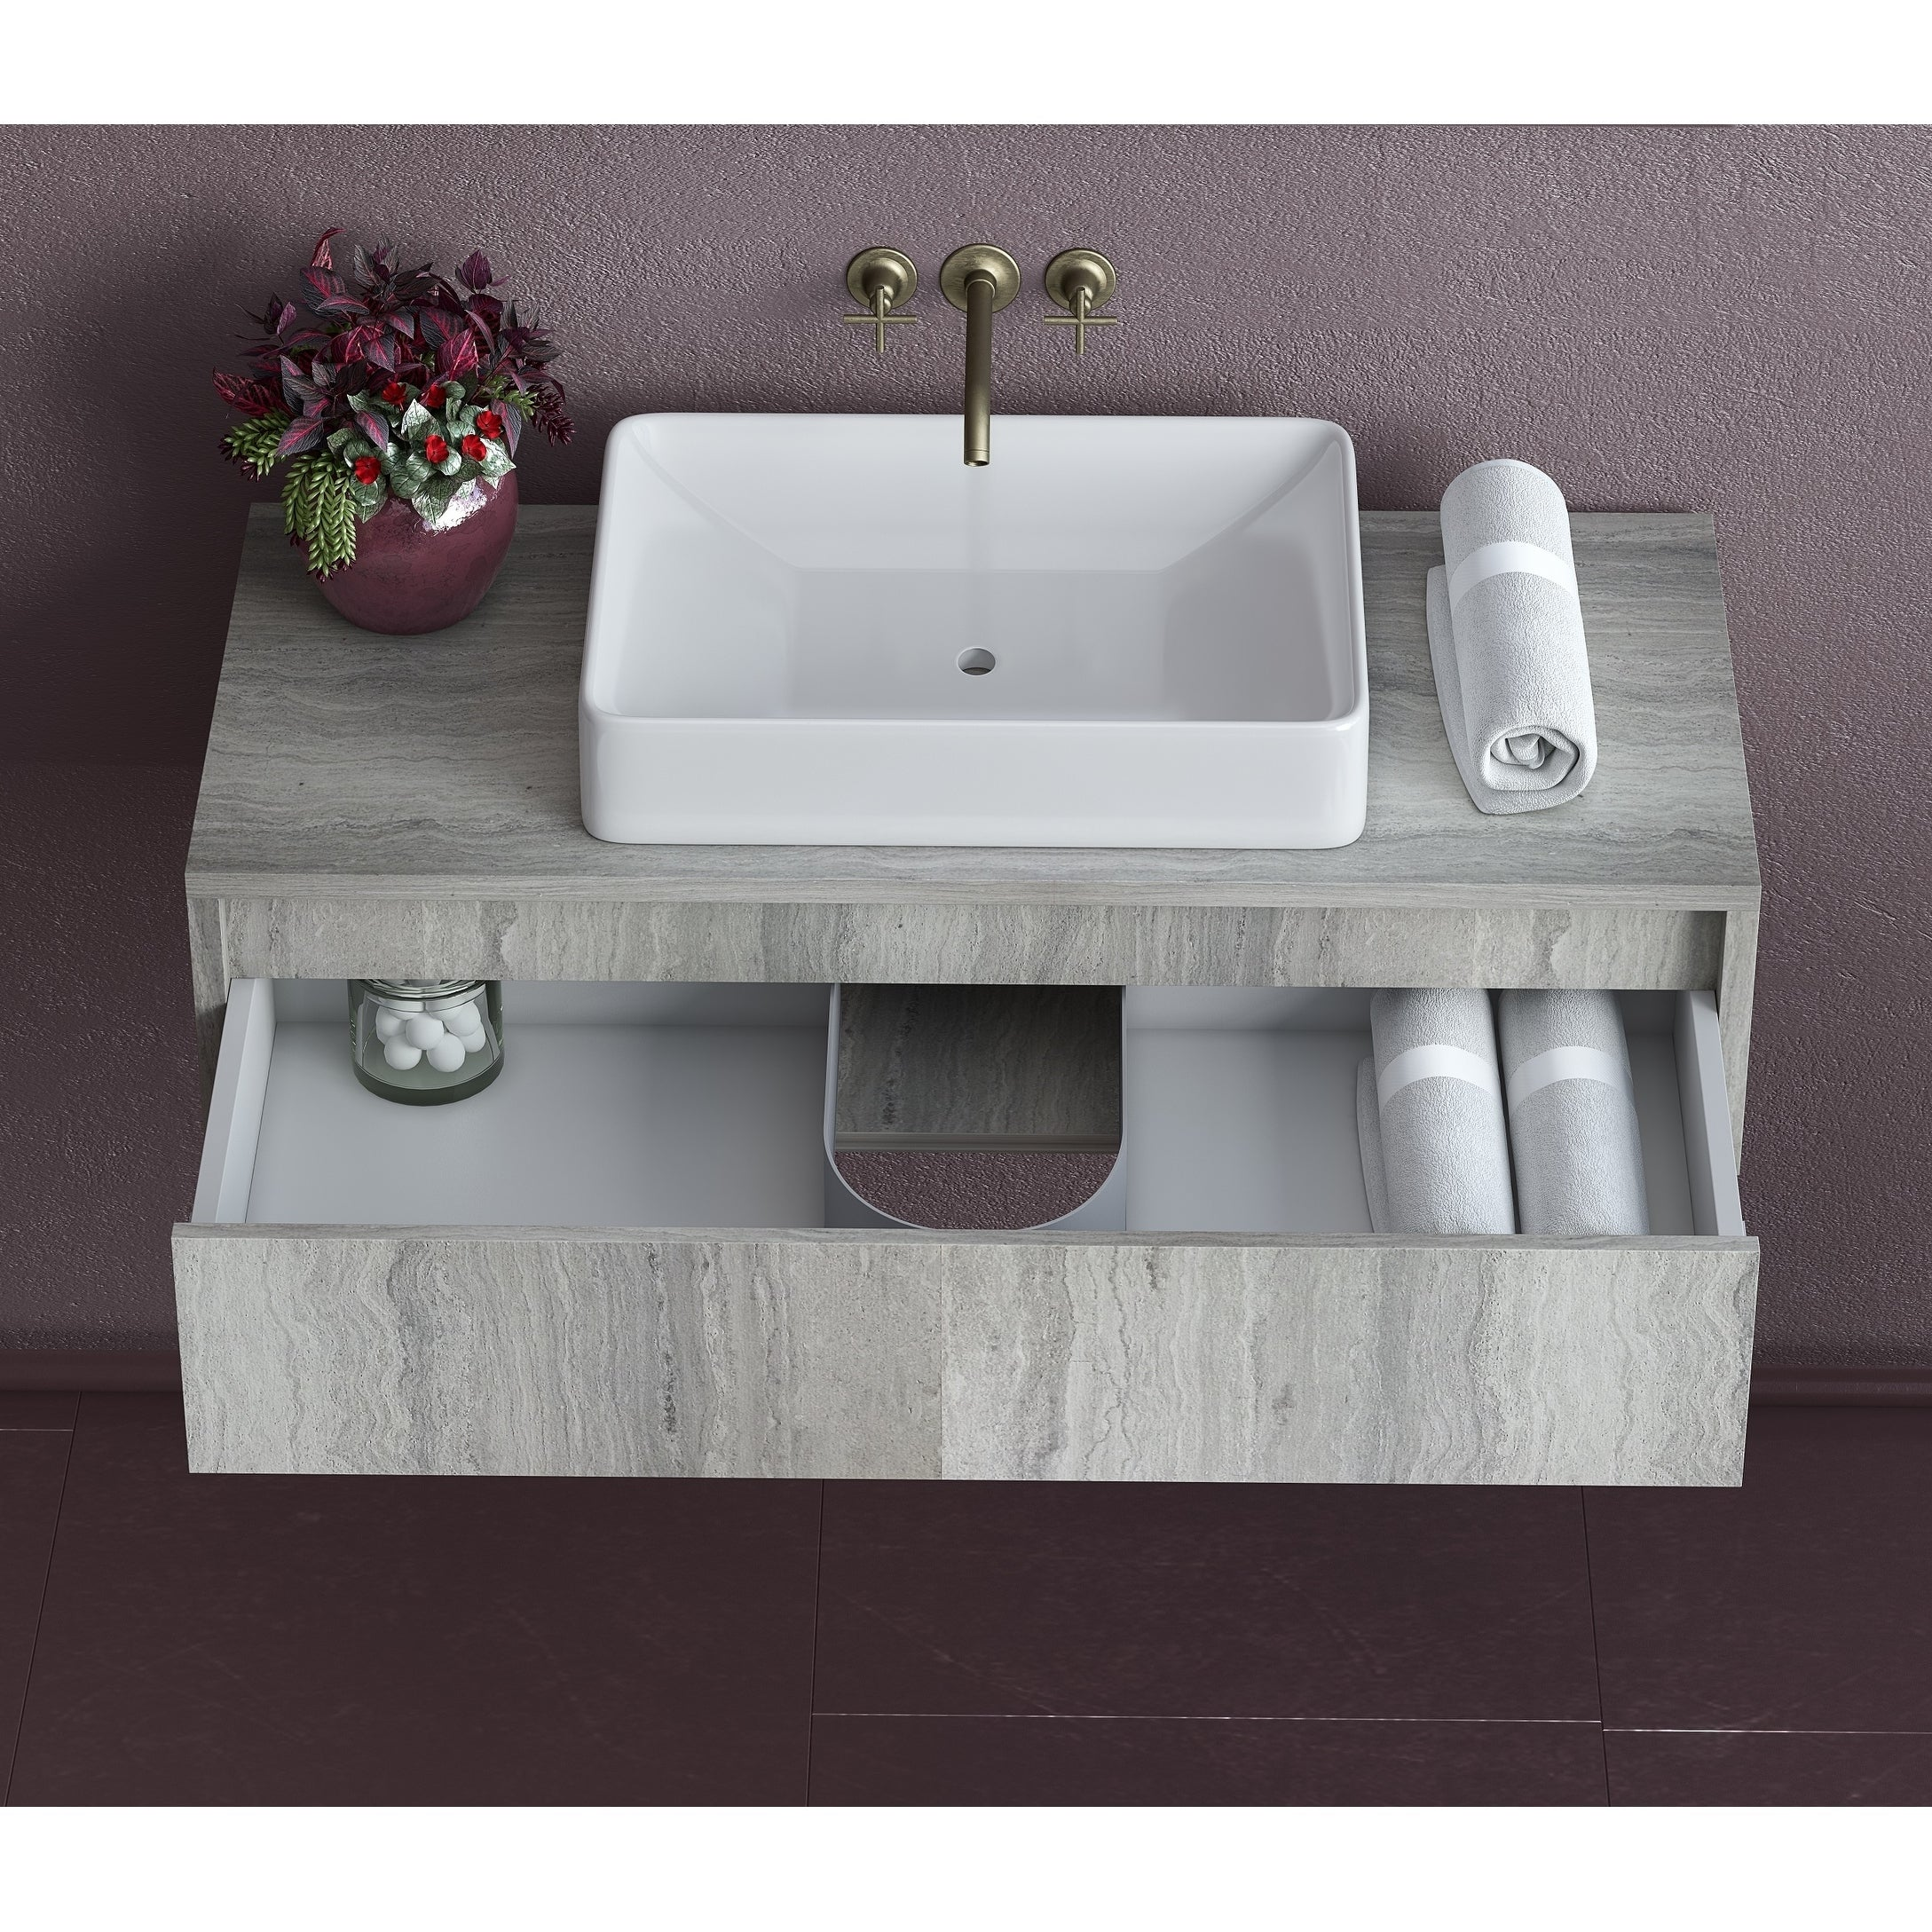 36 Inch Floating Oak Bathroom Vanity Sink Set Grey Oak With White Vessel Sink Overstock 30740266